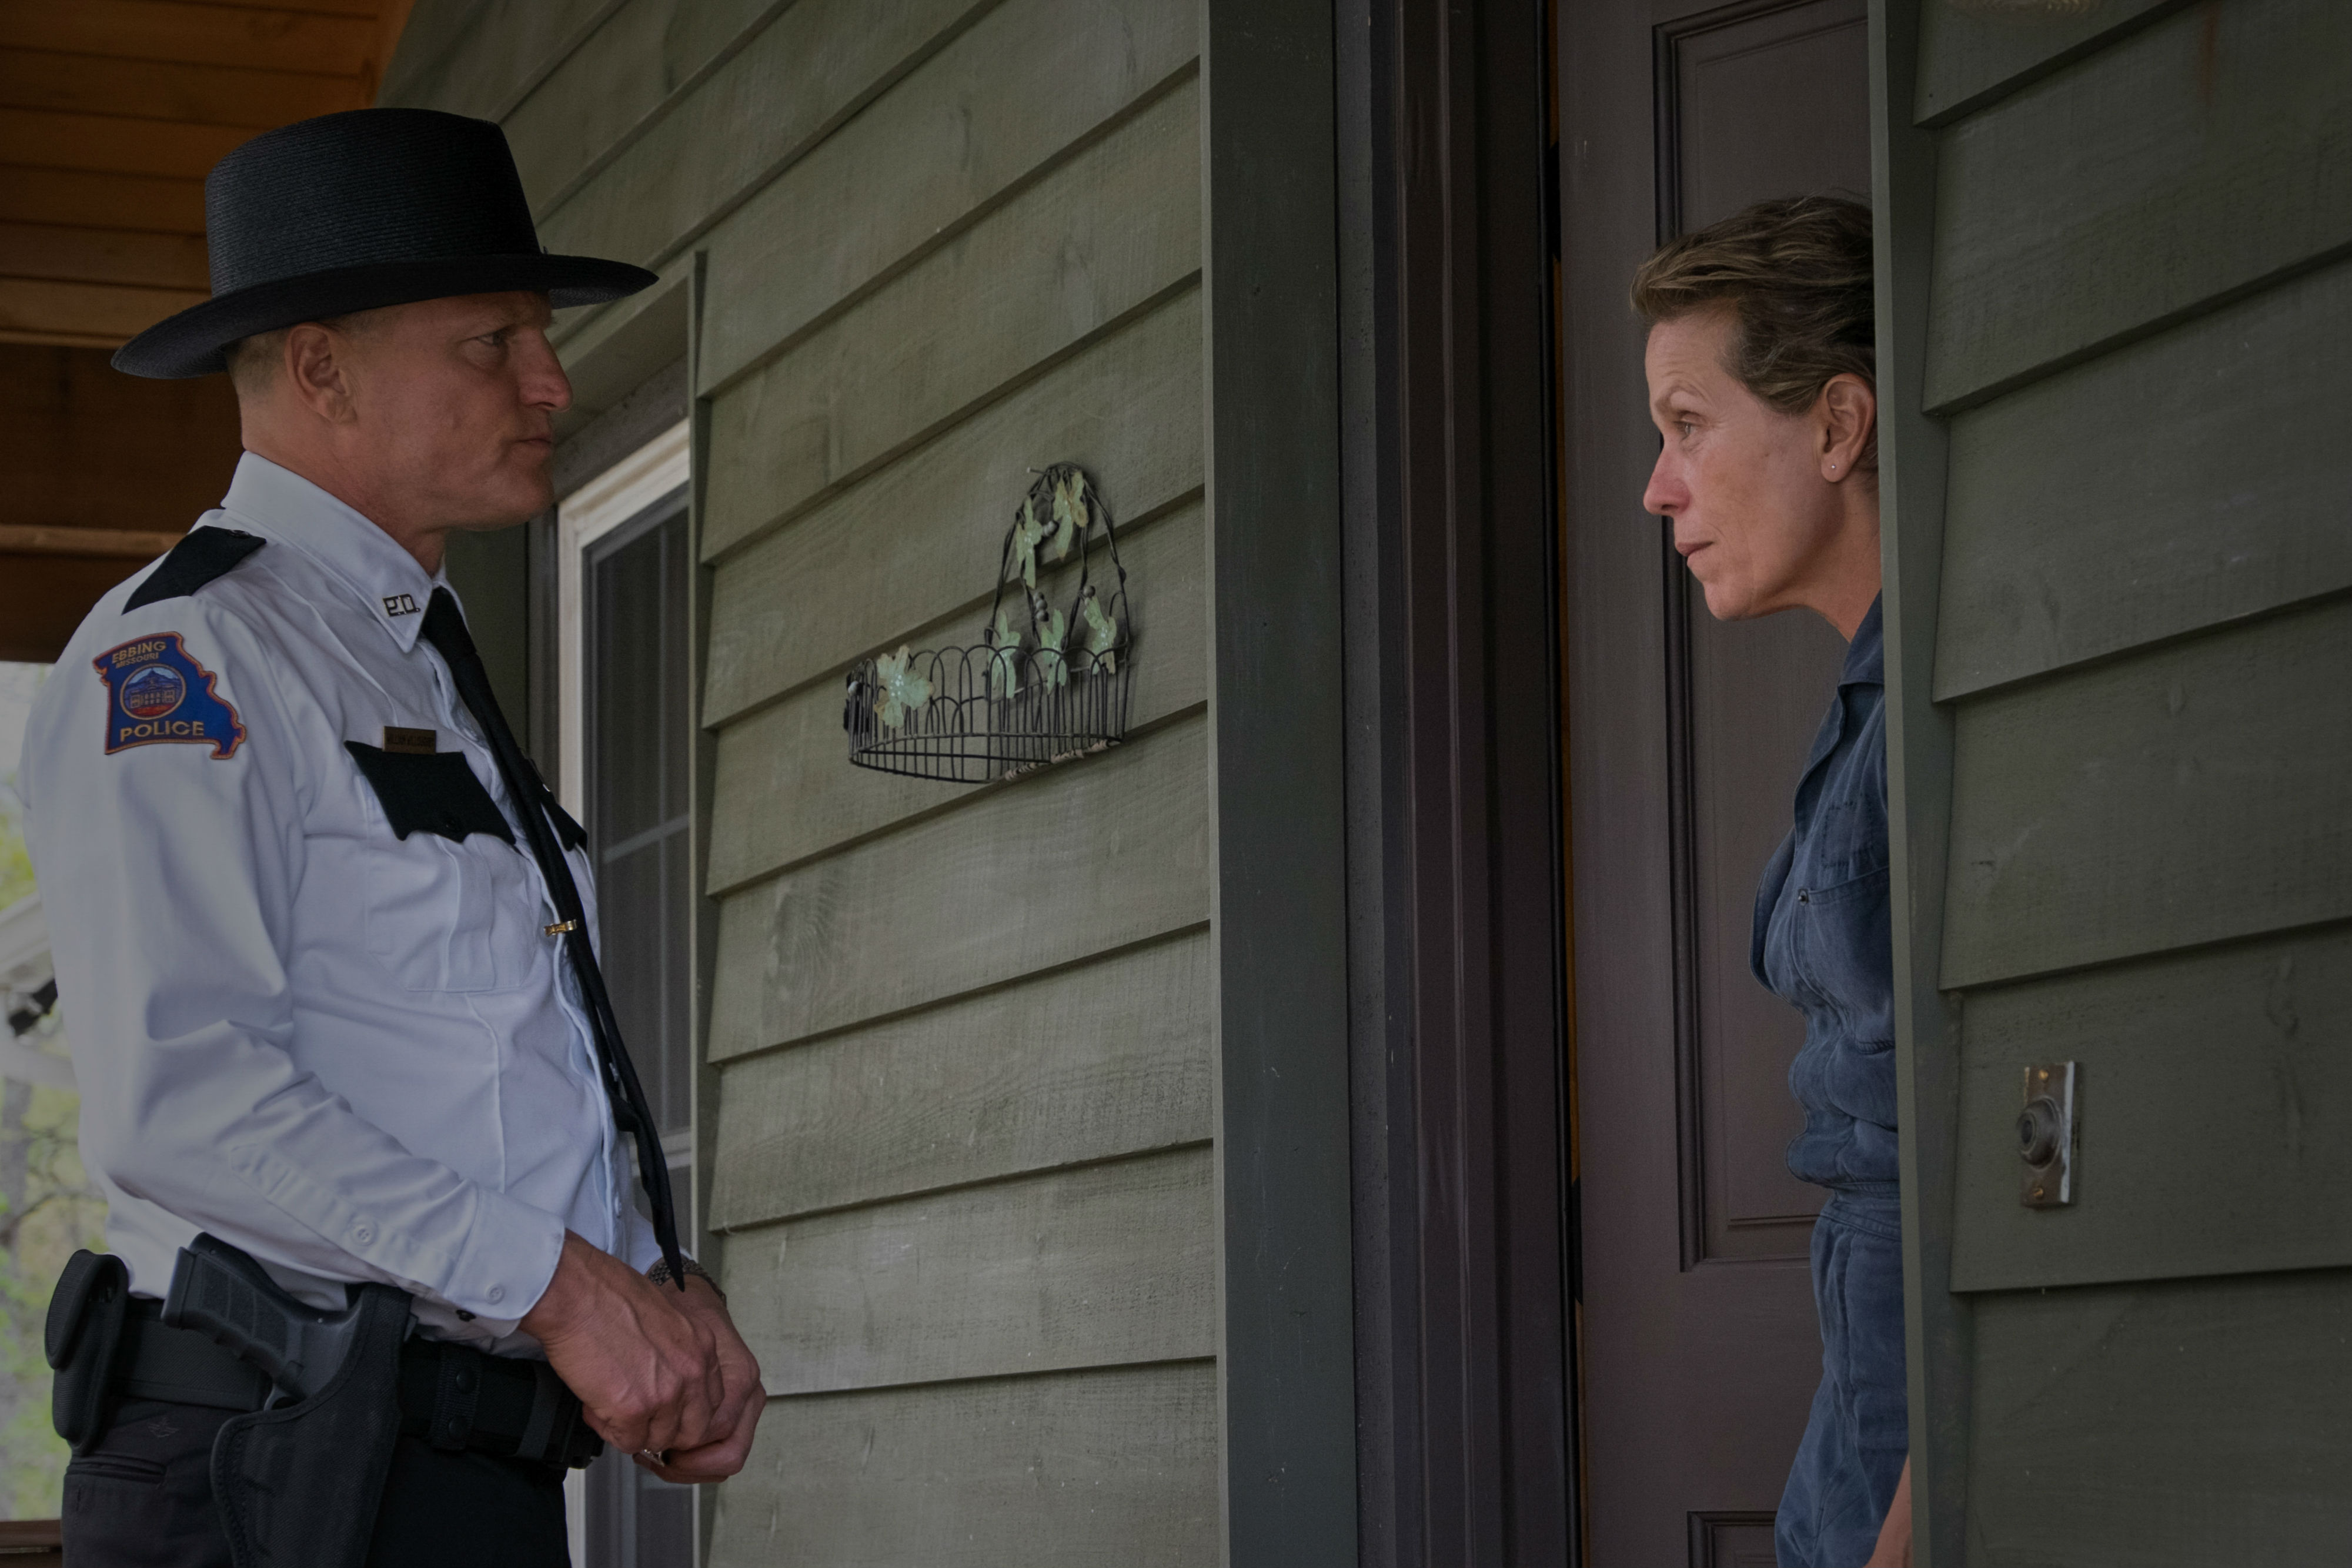 Three-Billboards-Outside-Ebbing-Missouri-14-Woody-Harrelson-and-Frances-McDormand